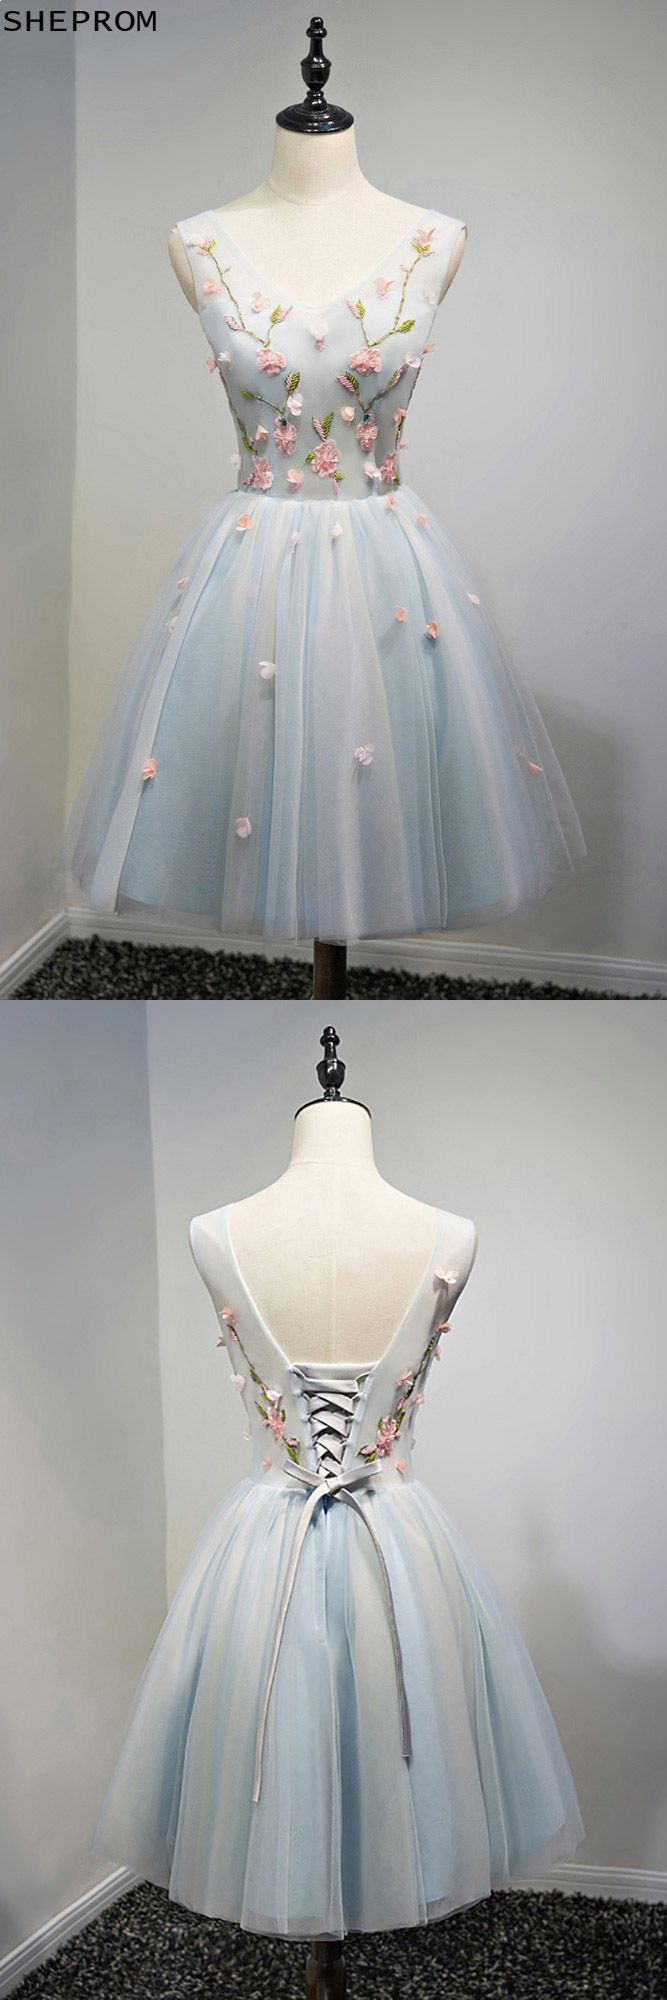 Unique vneck dusty blue tulle short prom party dress with flowers